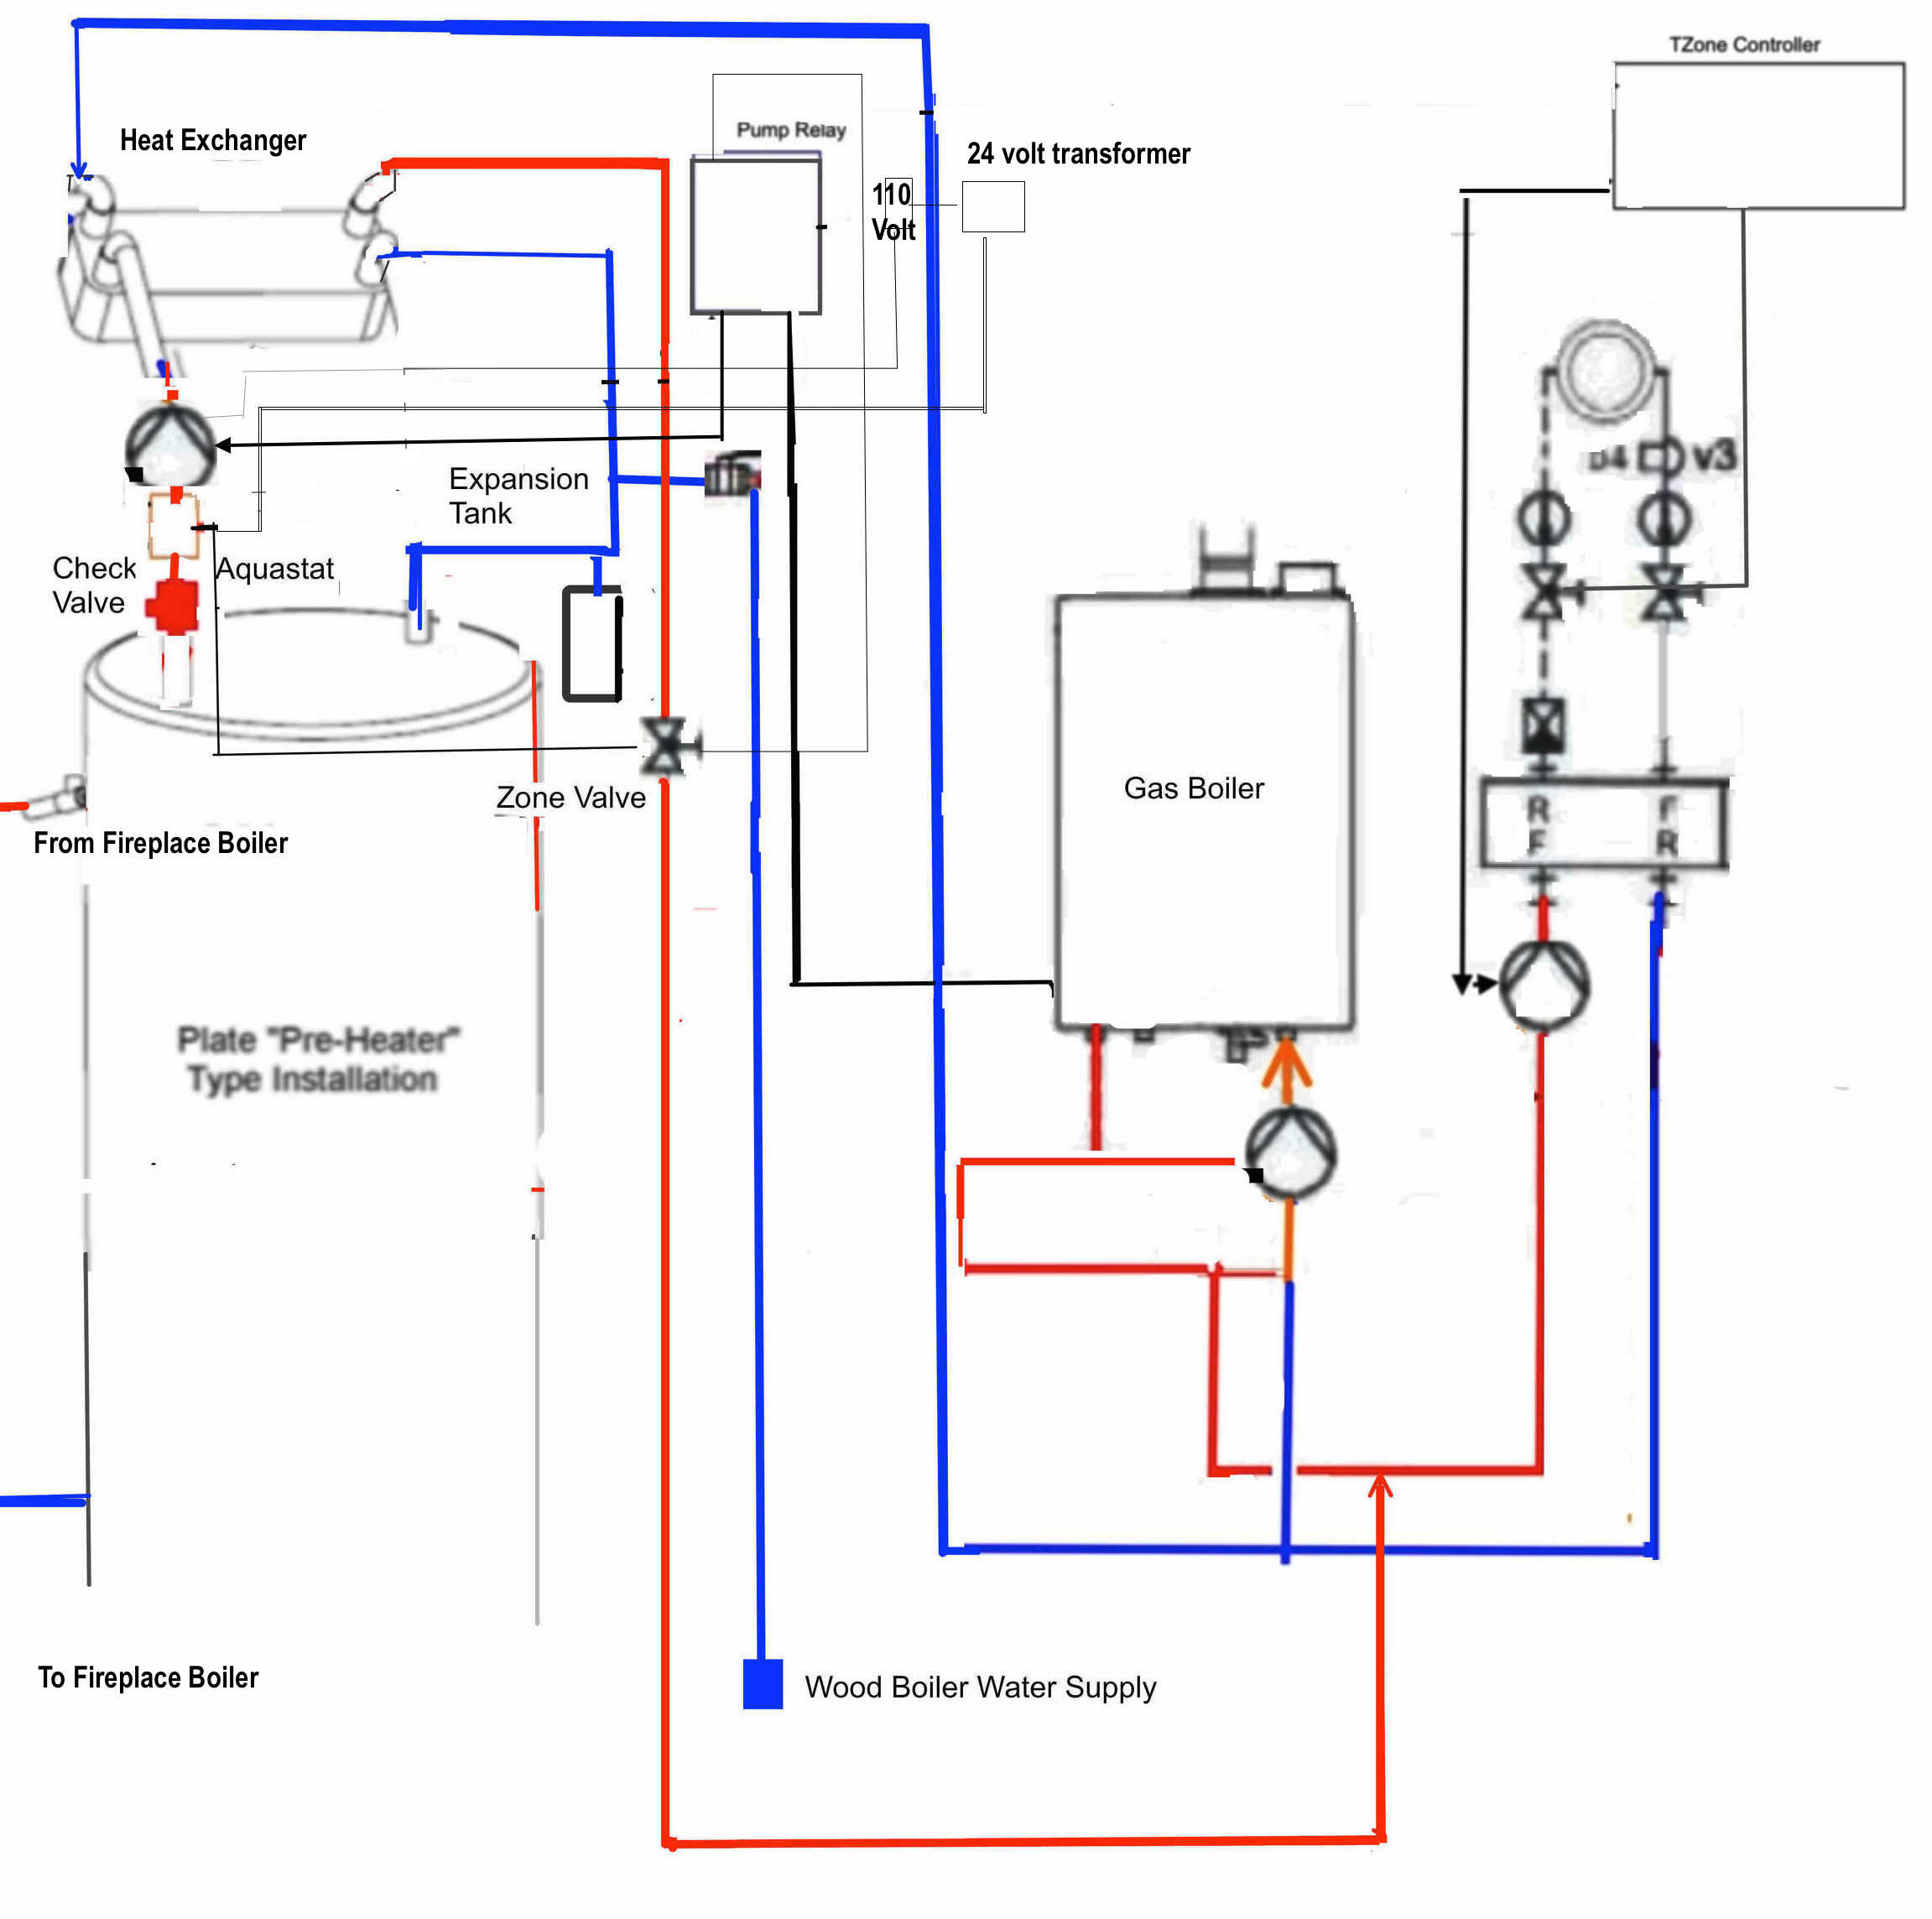 payne gas heater wiring diagram fp boiler storage    wiring    twinsprings research institute  fp boiler storage    wiring    twinsprings research institute